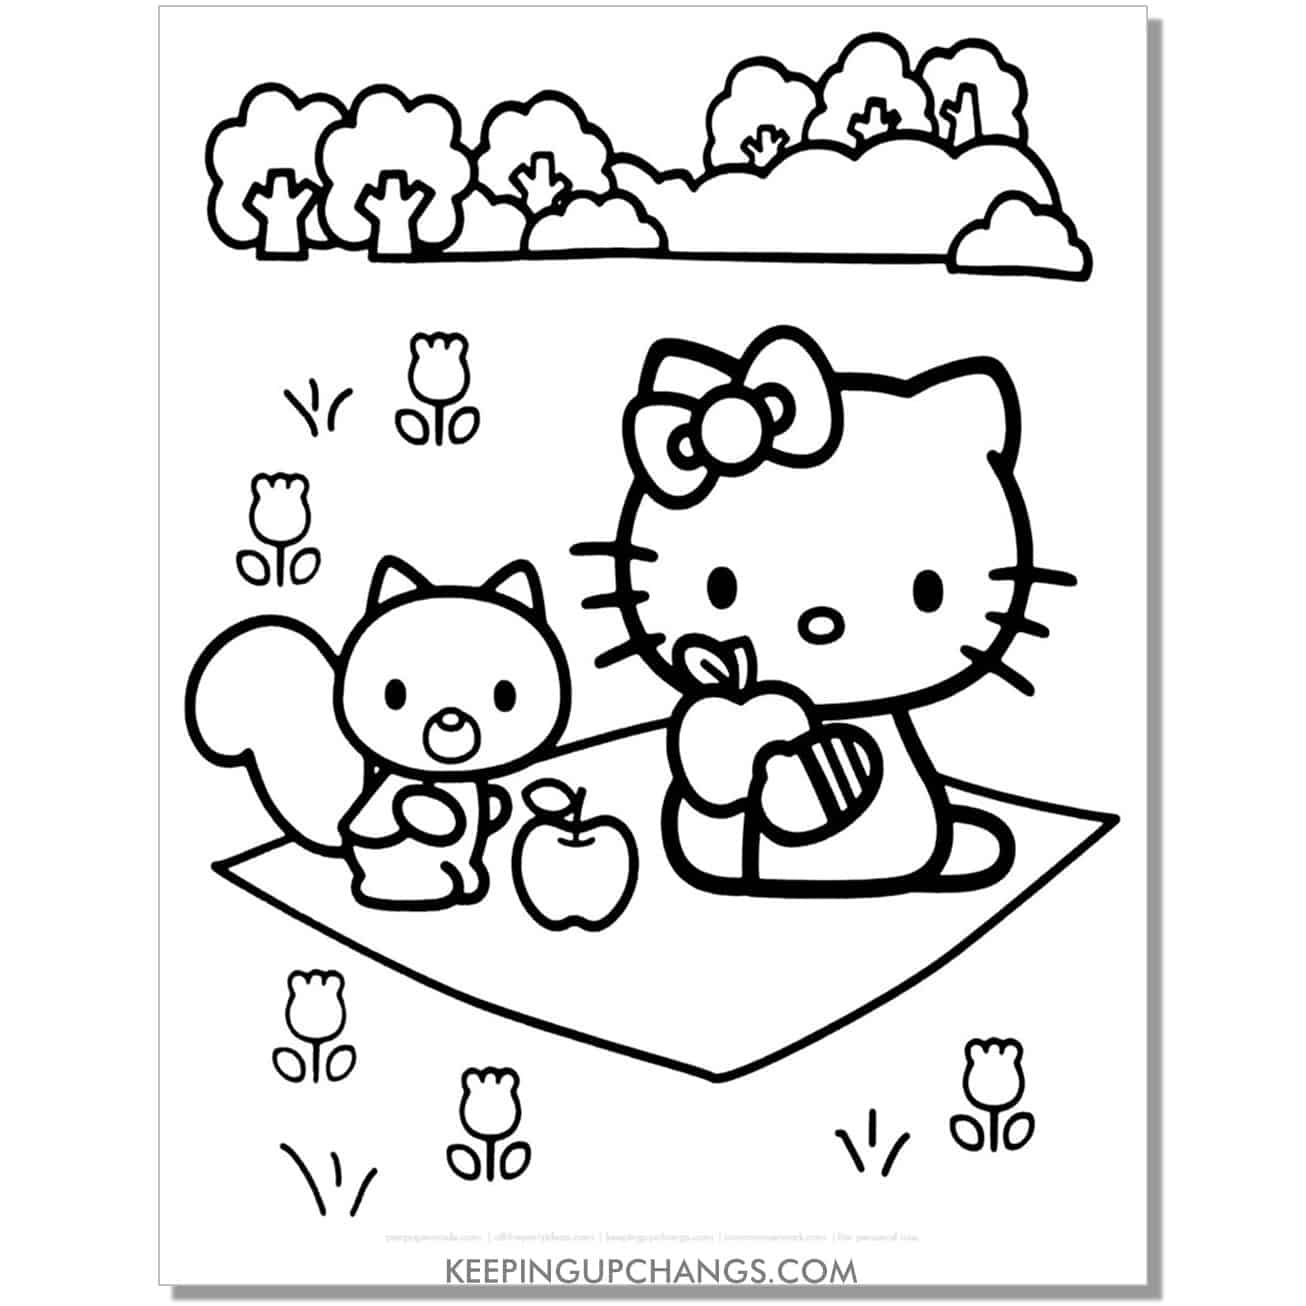 hello kitty picnic apple friend coloring page.